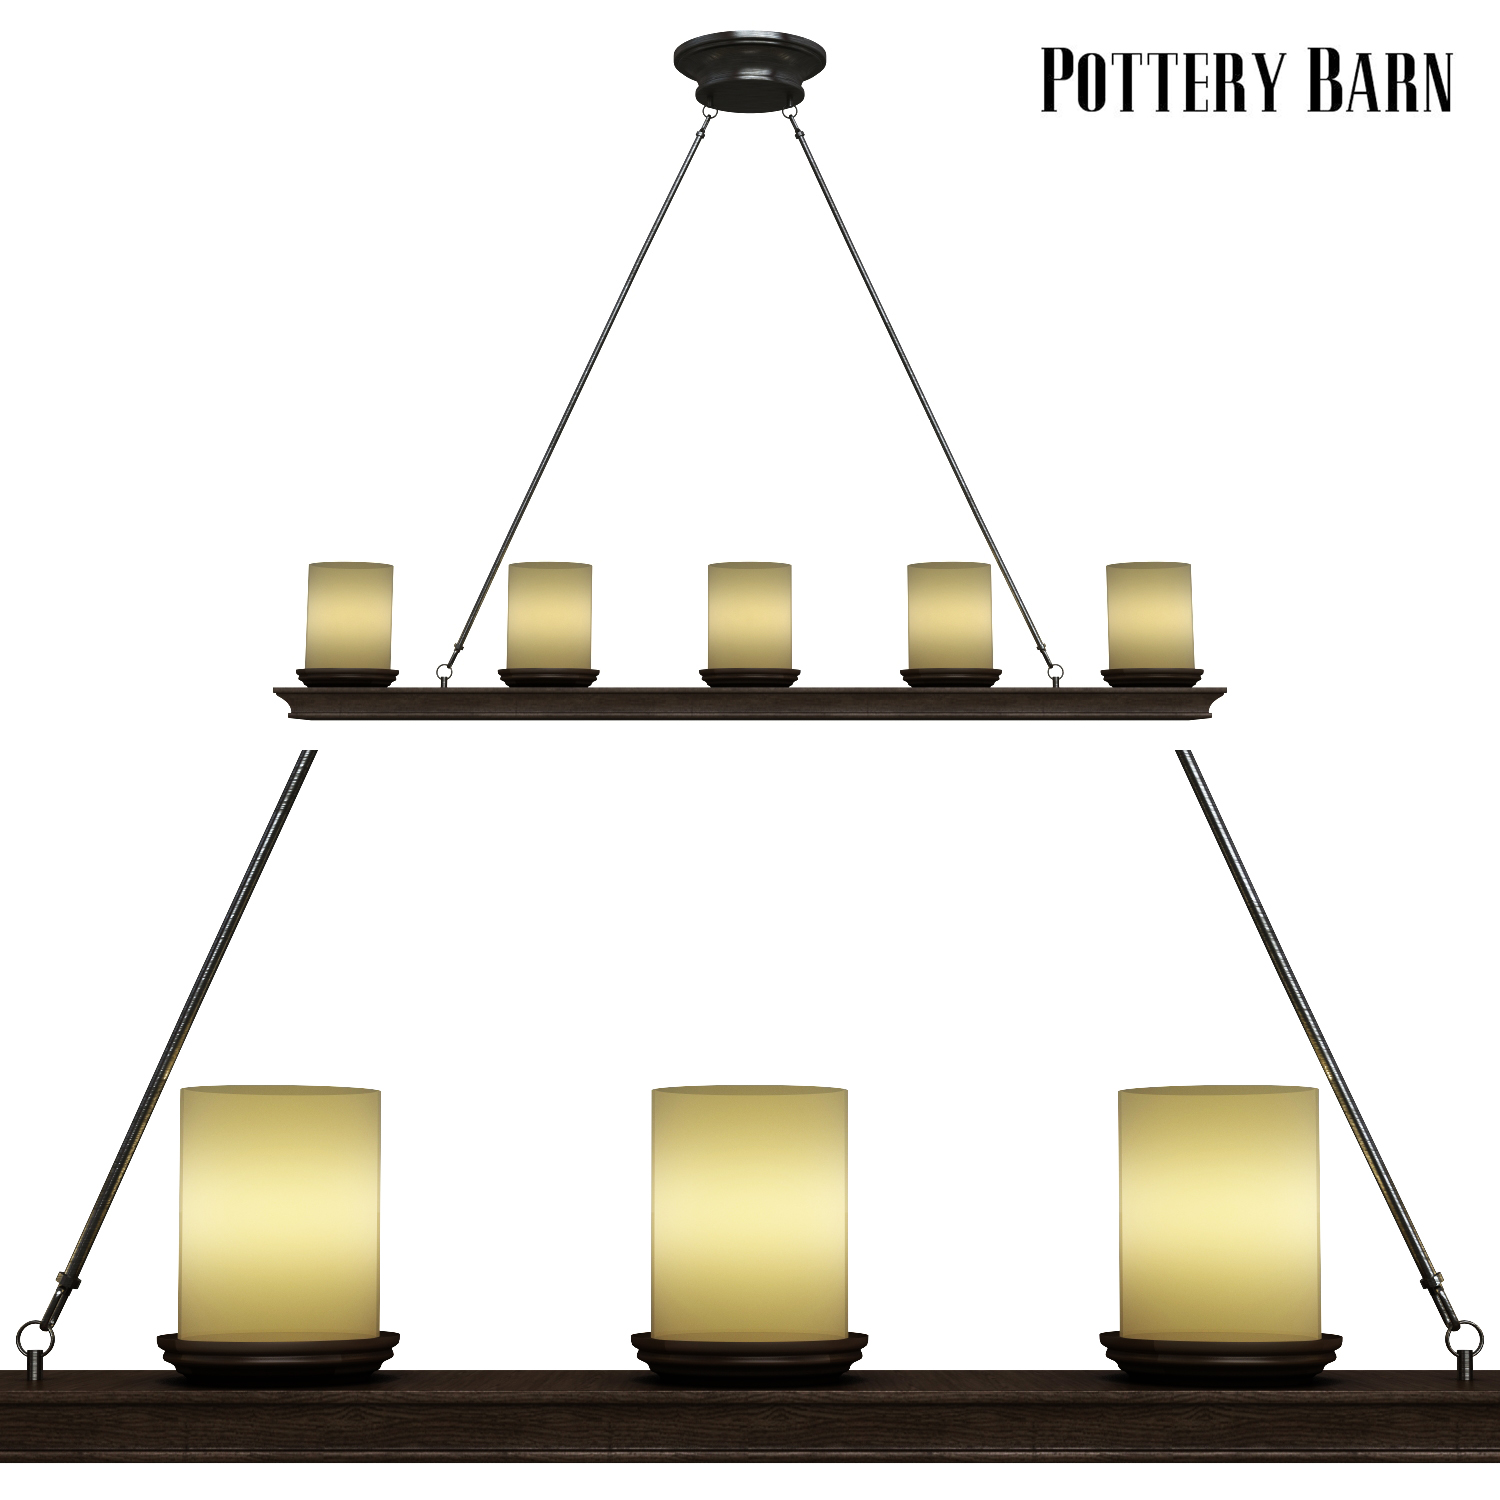 Pottery barn veranda linear chandelier by erkinaliyev 3docean veranda linear chandelier preview 590g veranda linear chandelier preview thumbnailg aloadofball Choice Image